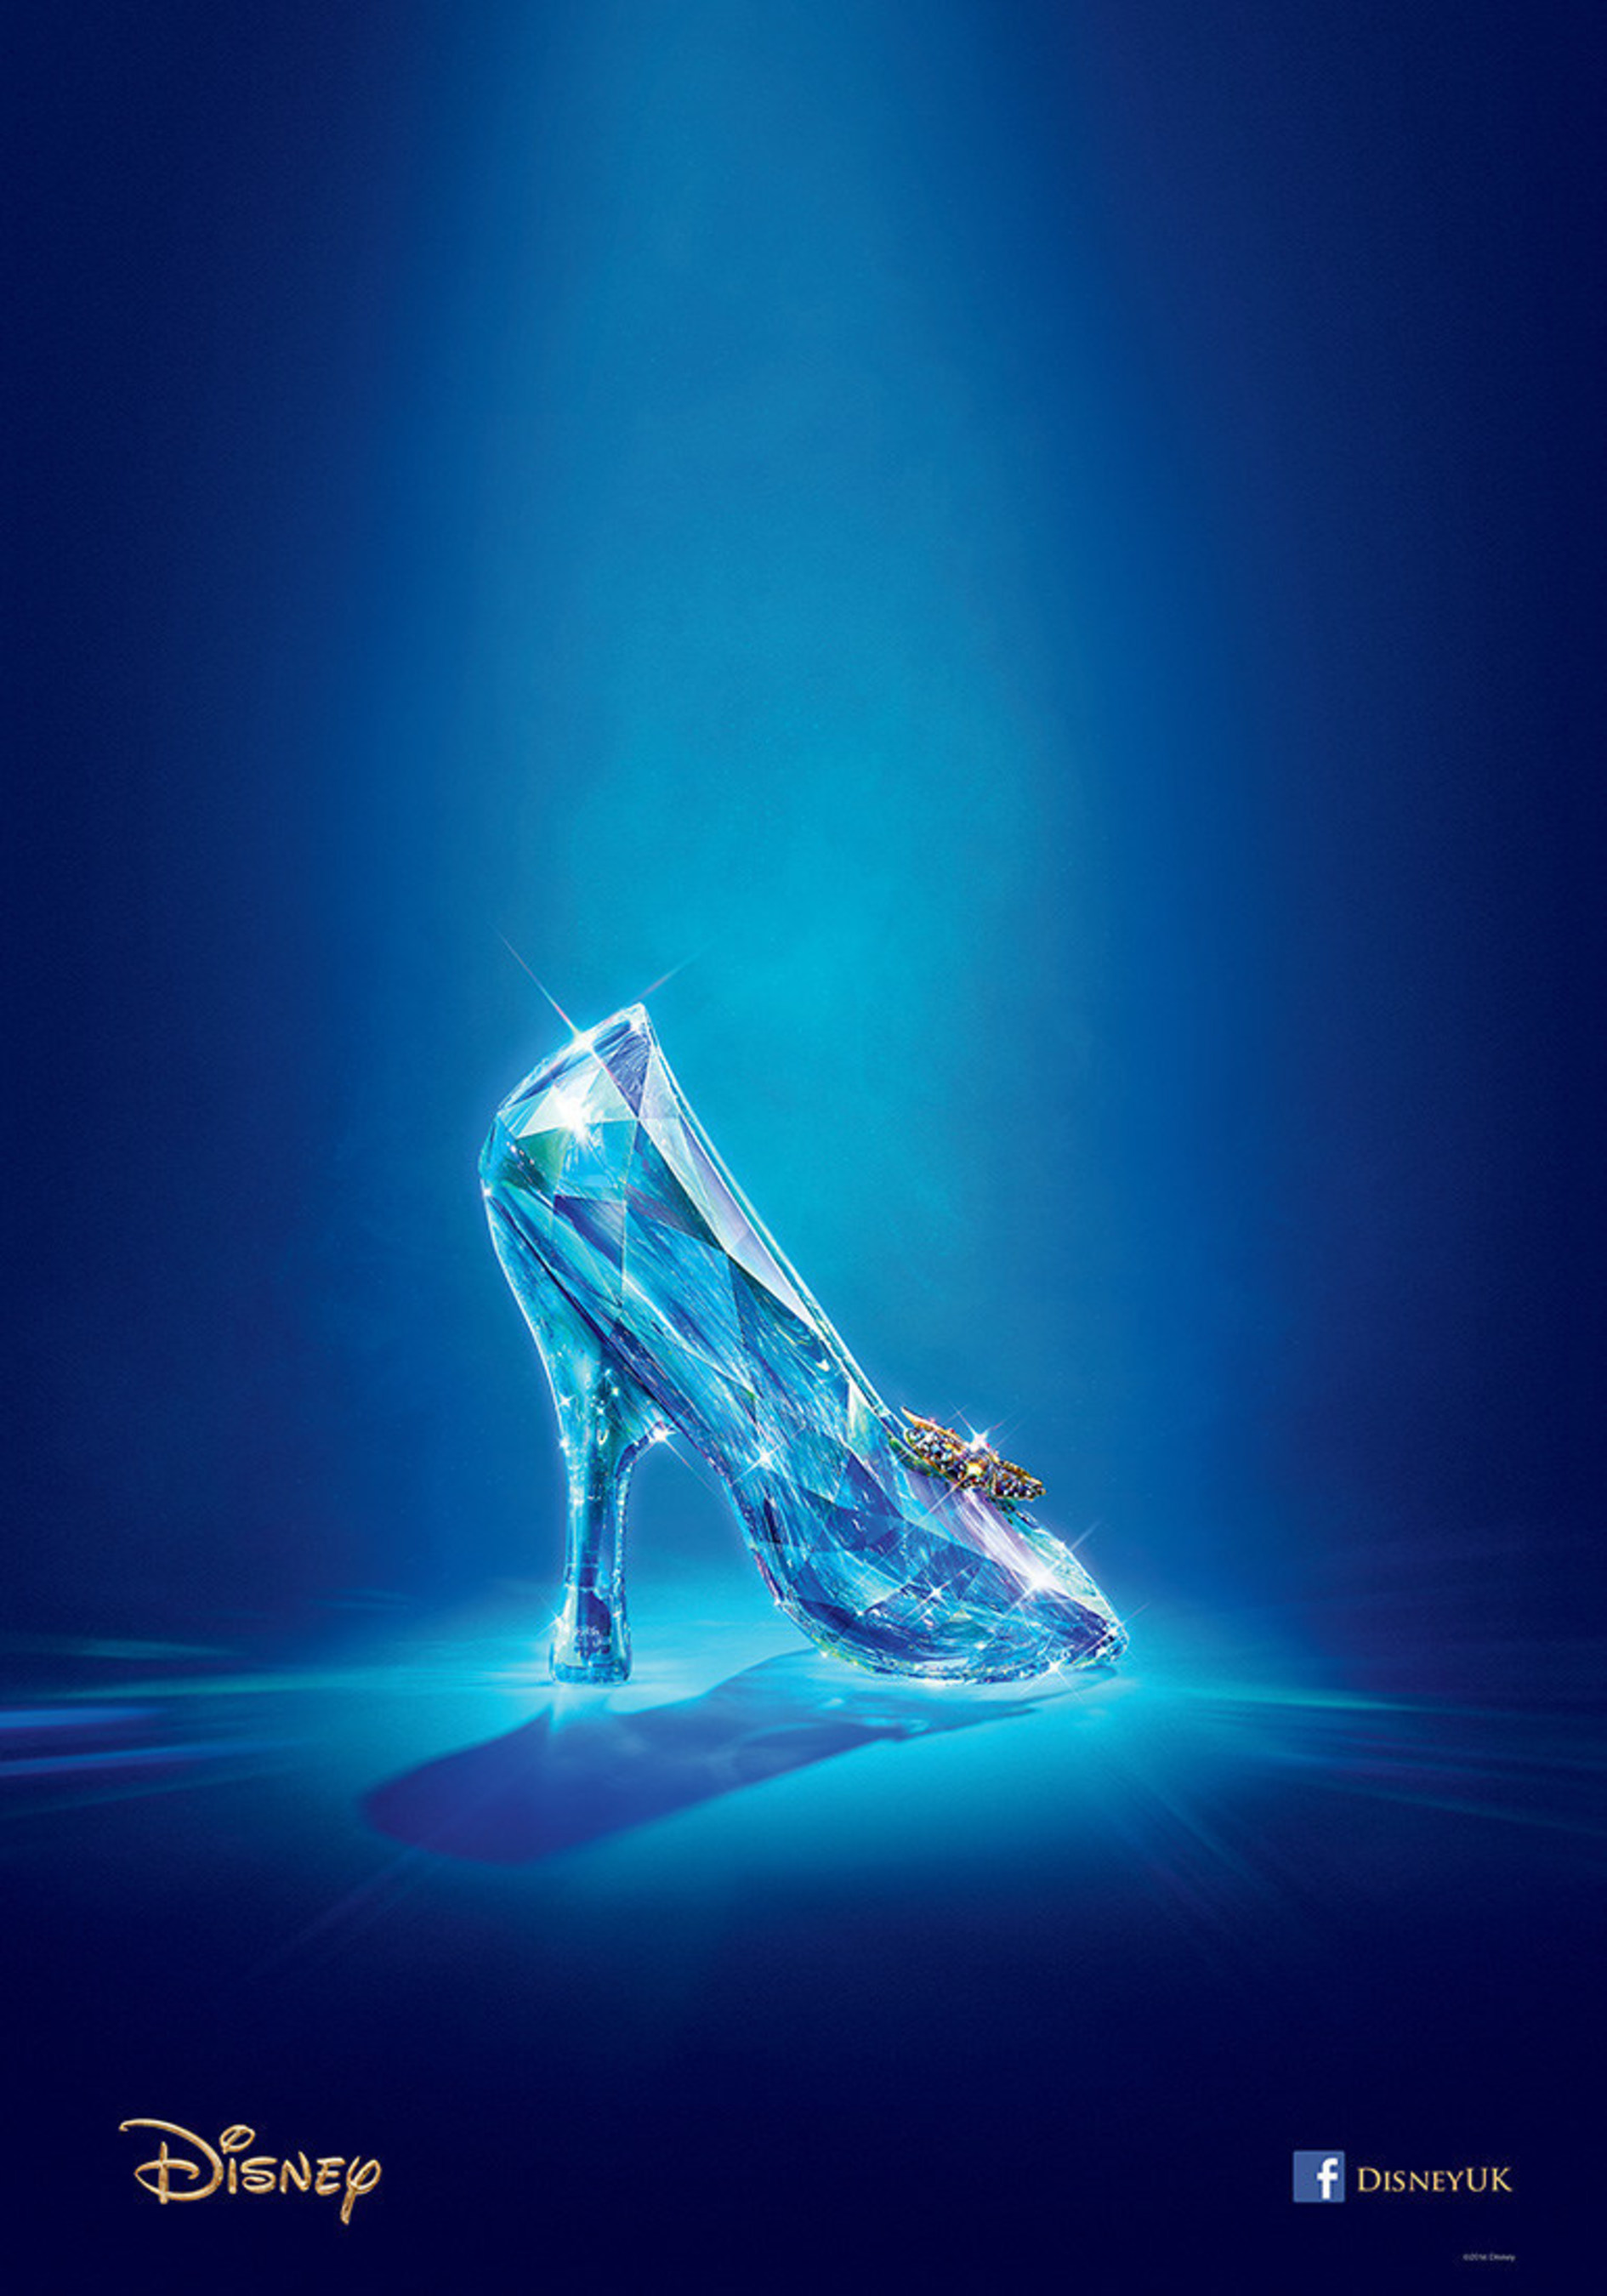 Cinderella slippers (c) 2014 Disney Enterprises, Inc. All Rights Reserved